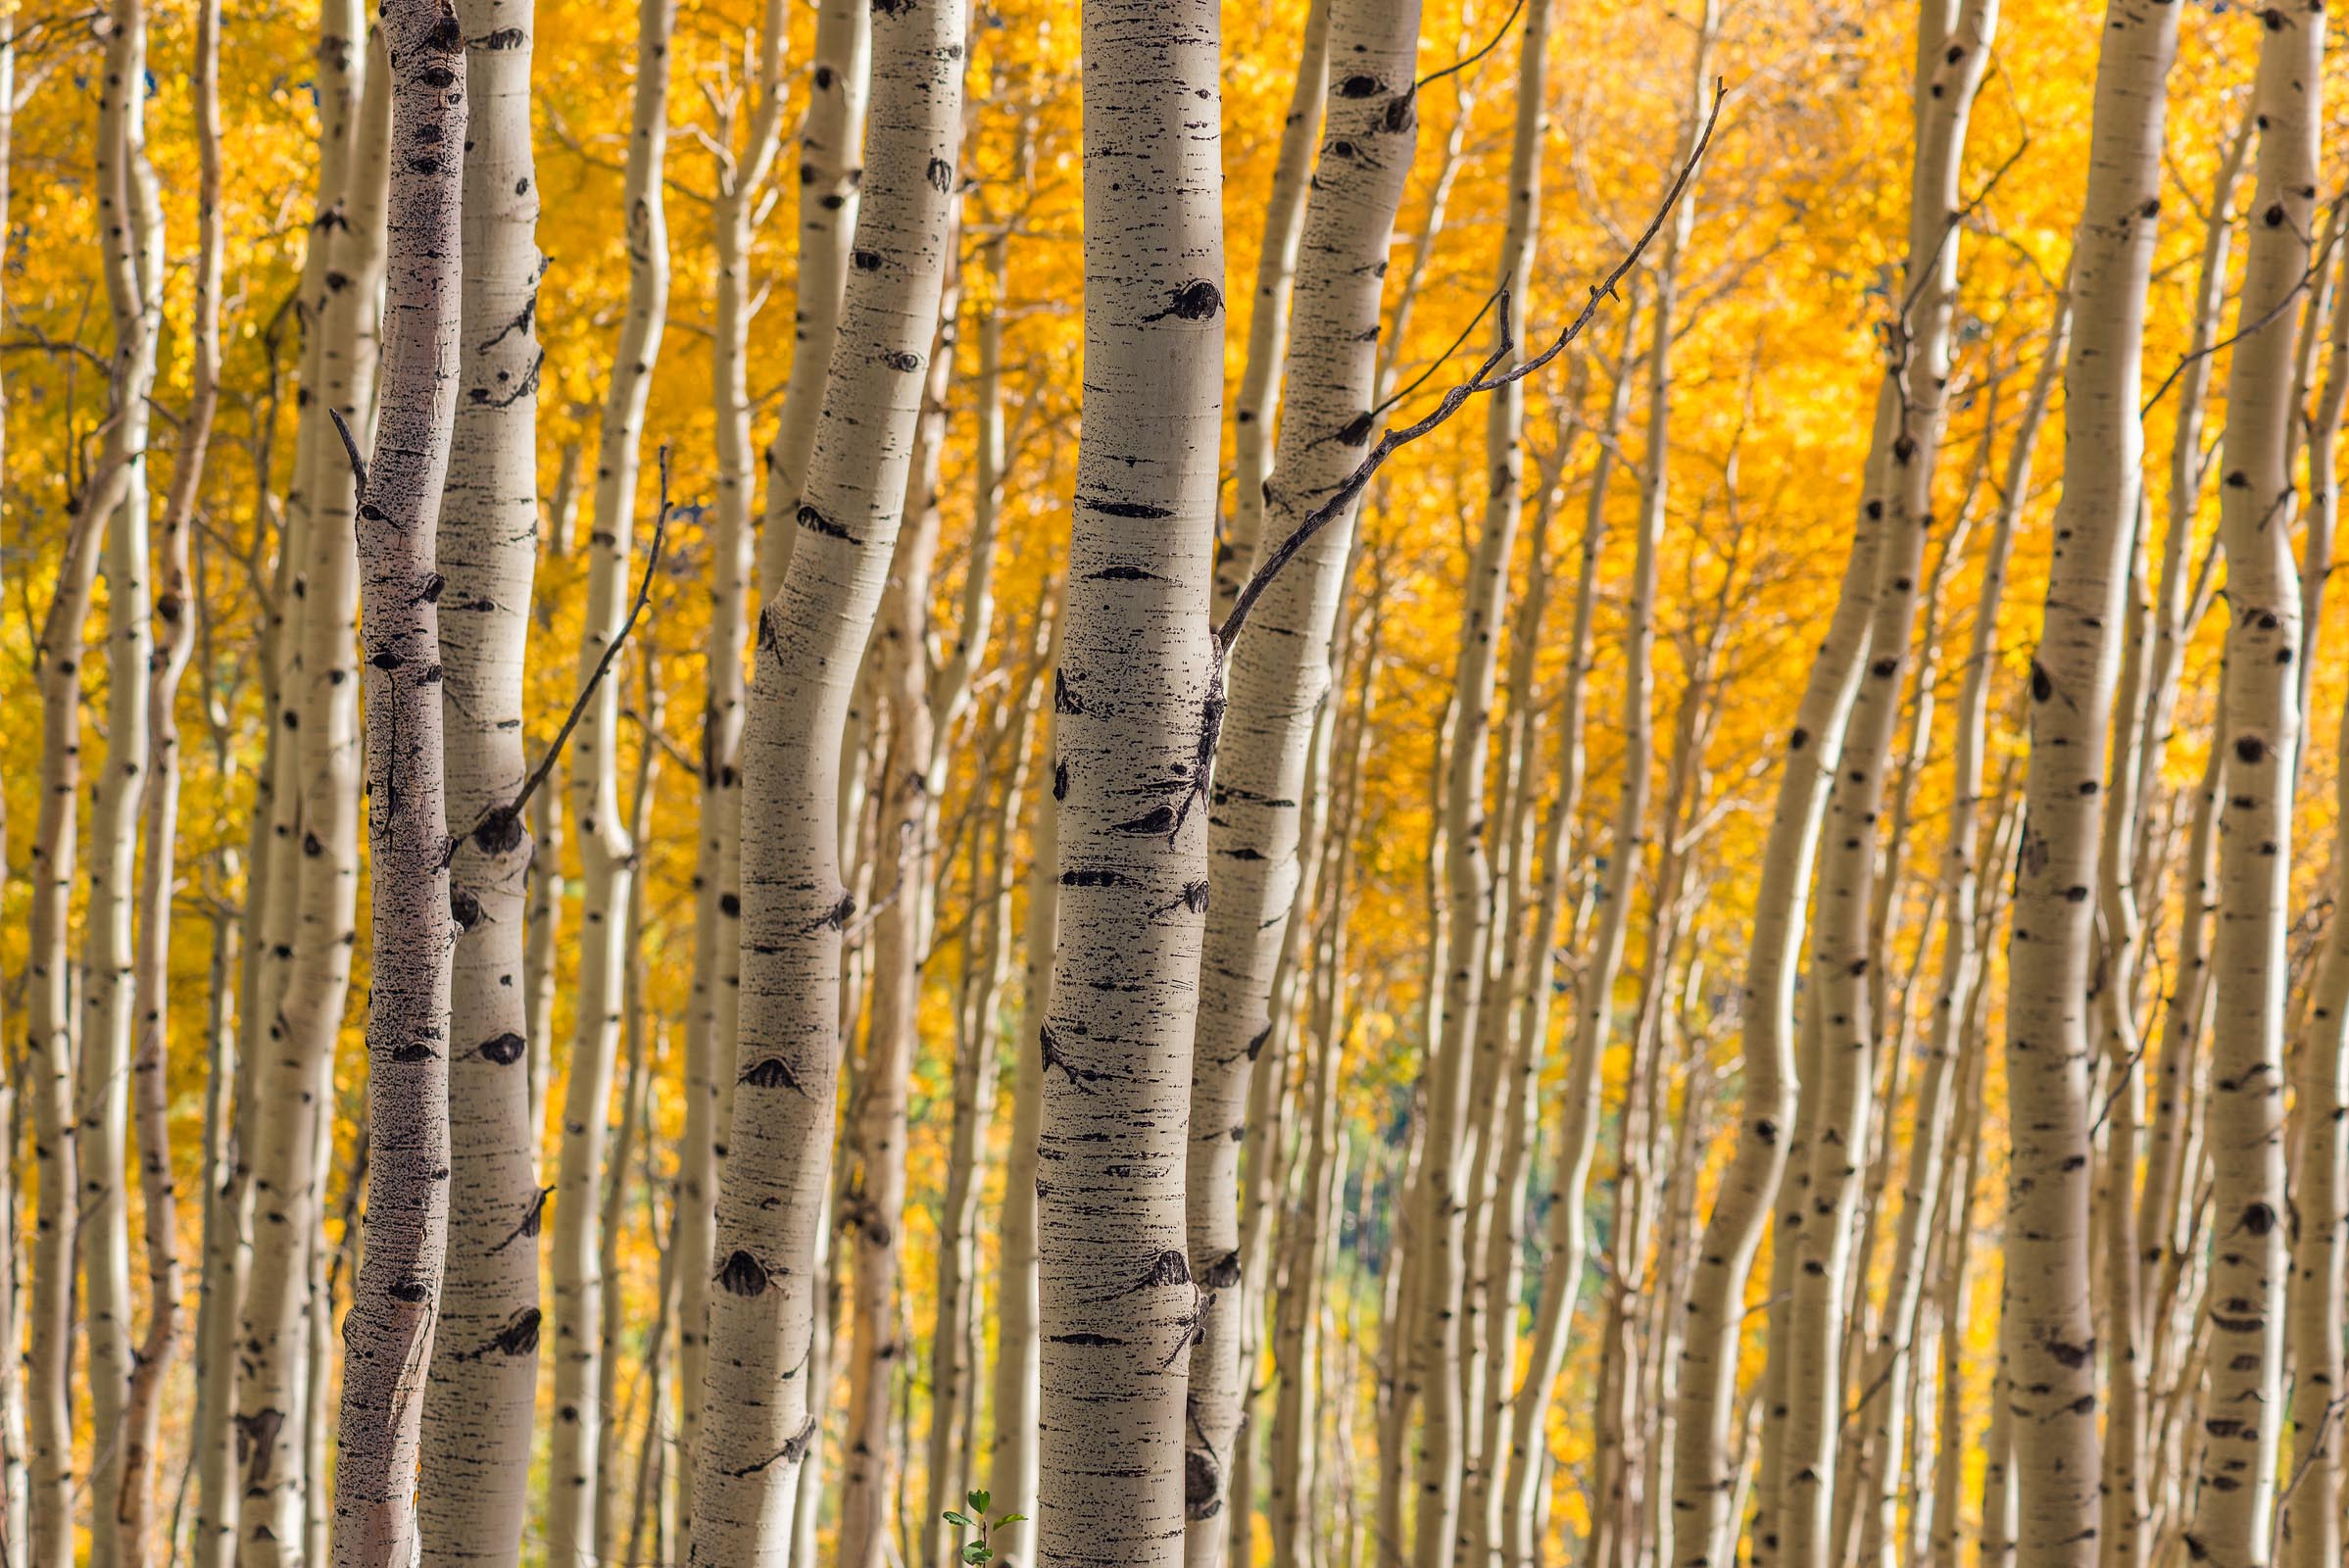 Photograph of Aspen Grove in San Juan Mountains, Colorado by Brent Goldman Photography